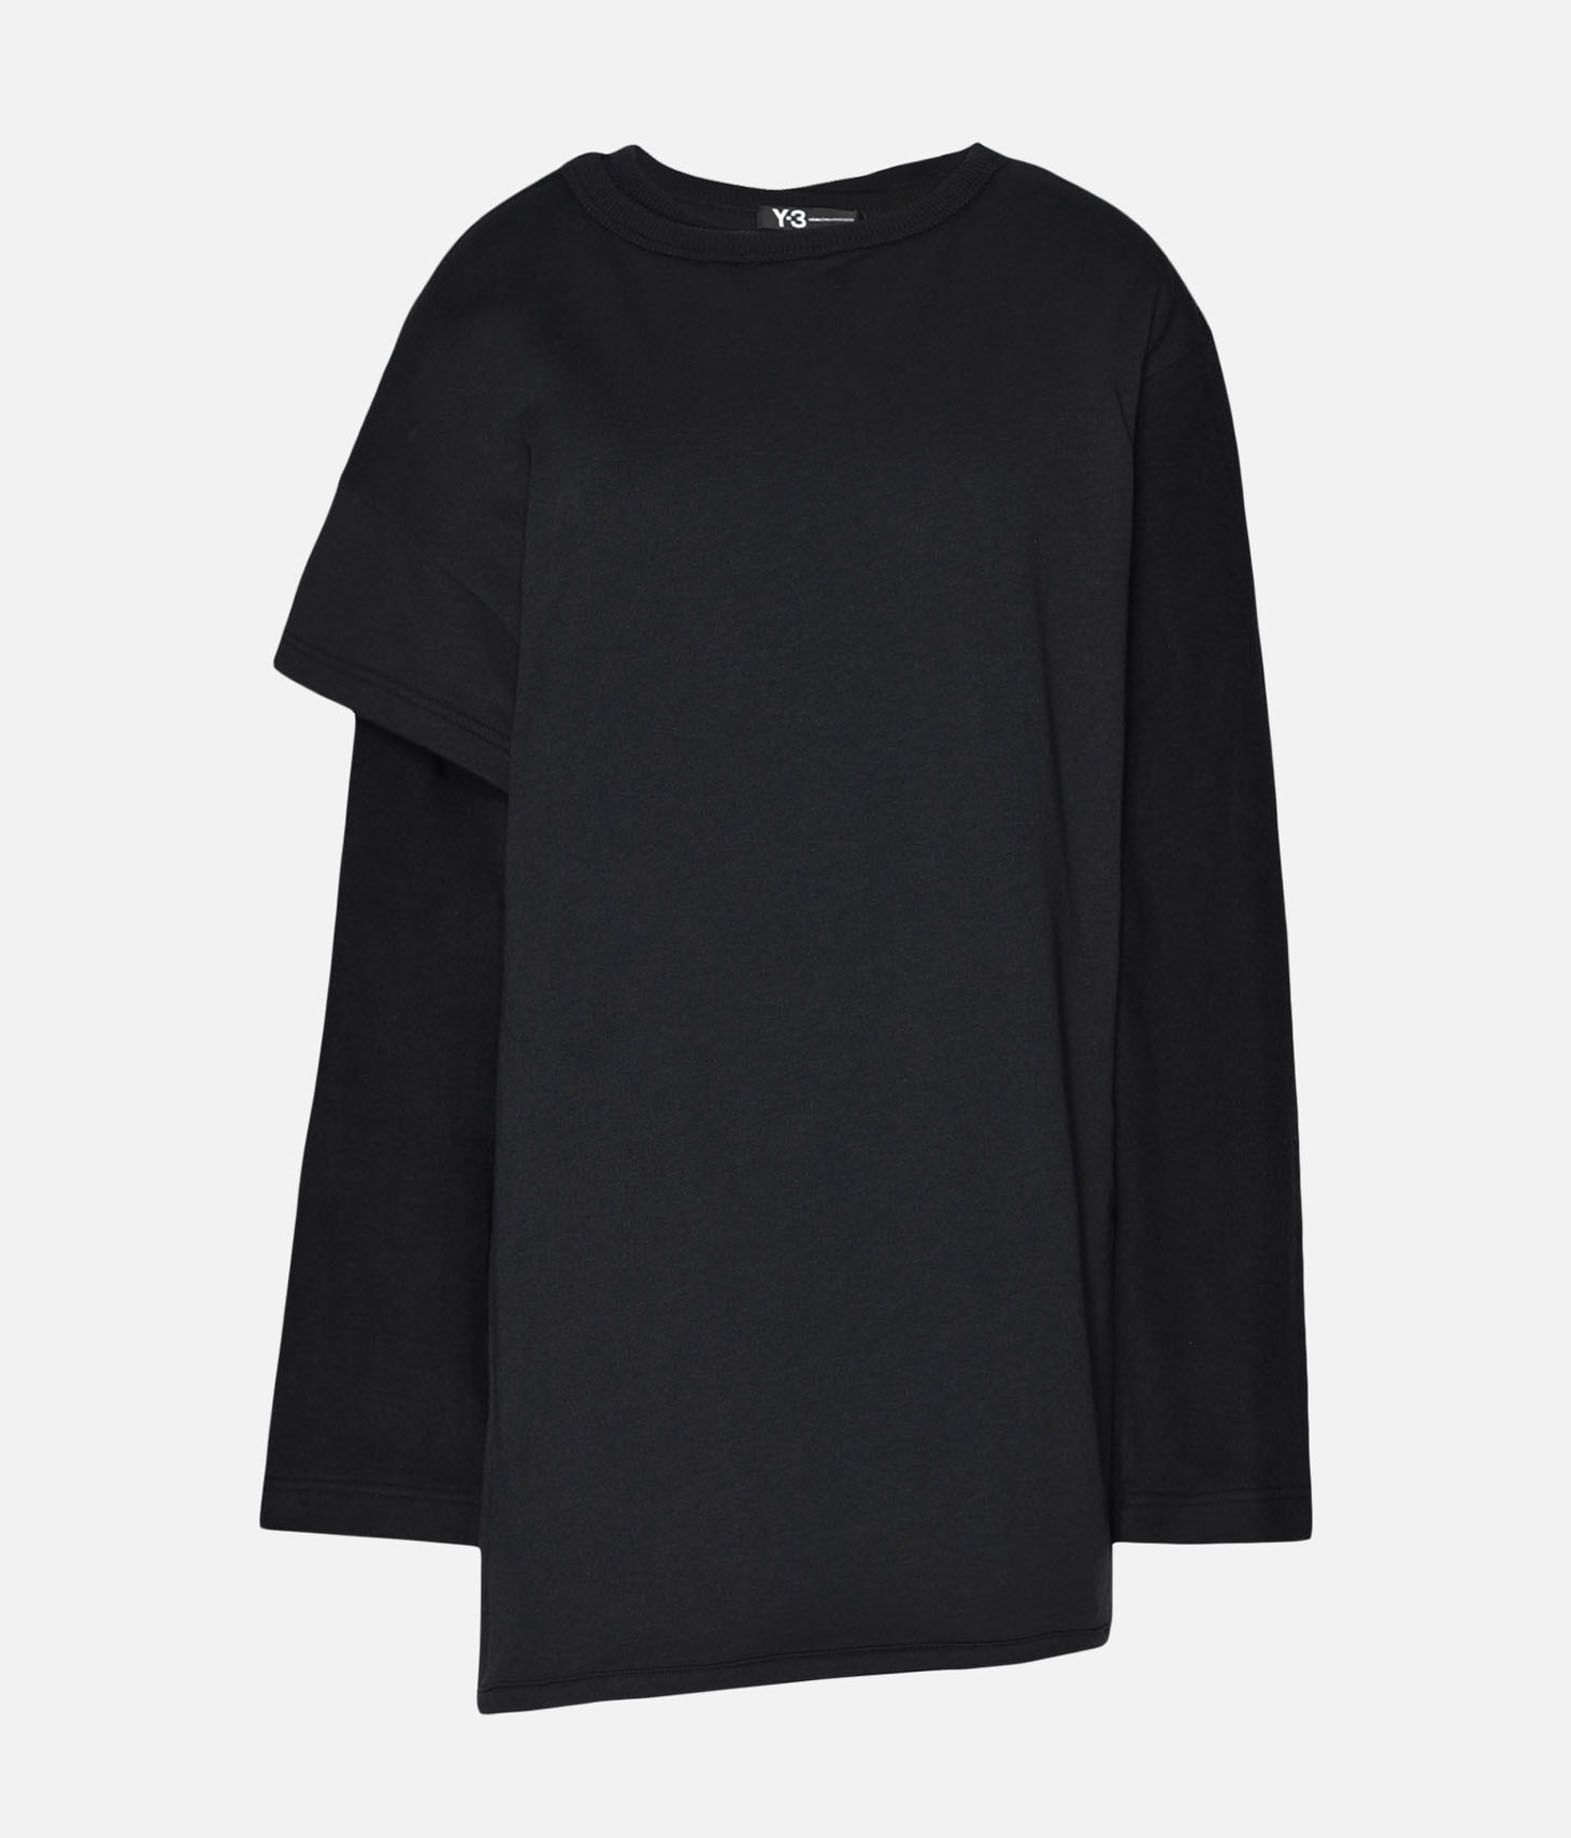 Y-3 Y-3 Two-Layer Fleece Sweater Sweatshirt Woman f